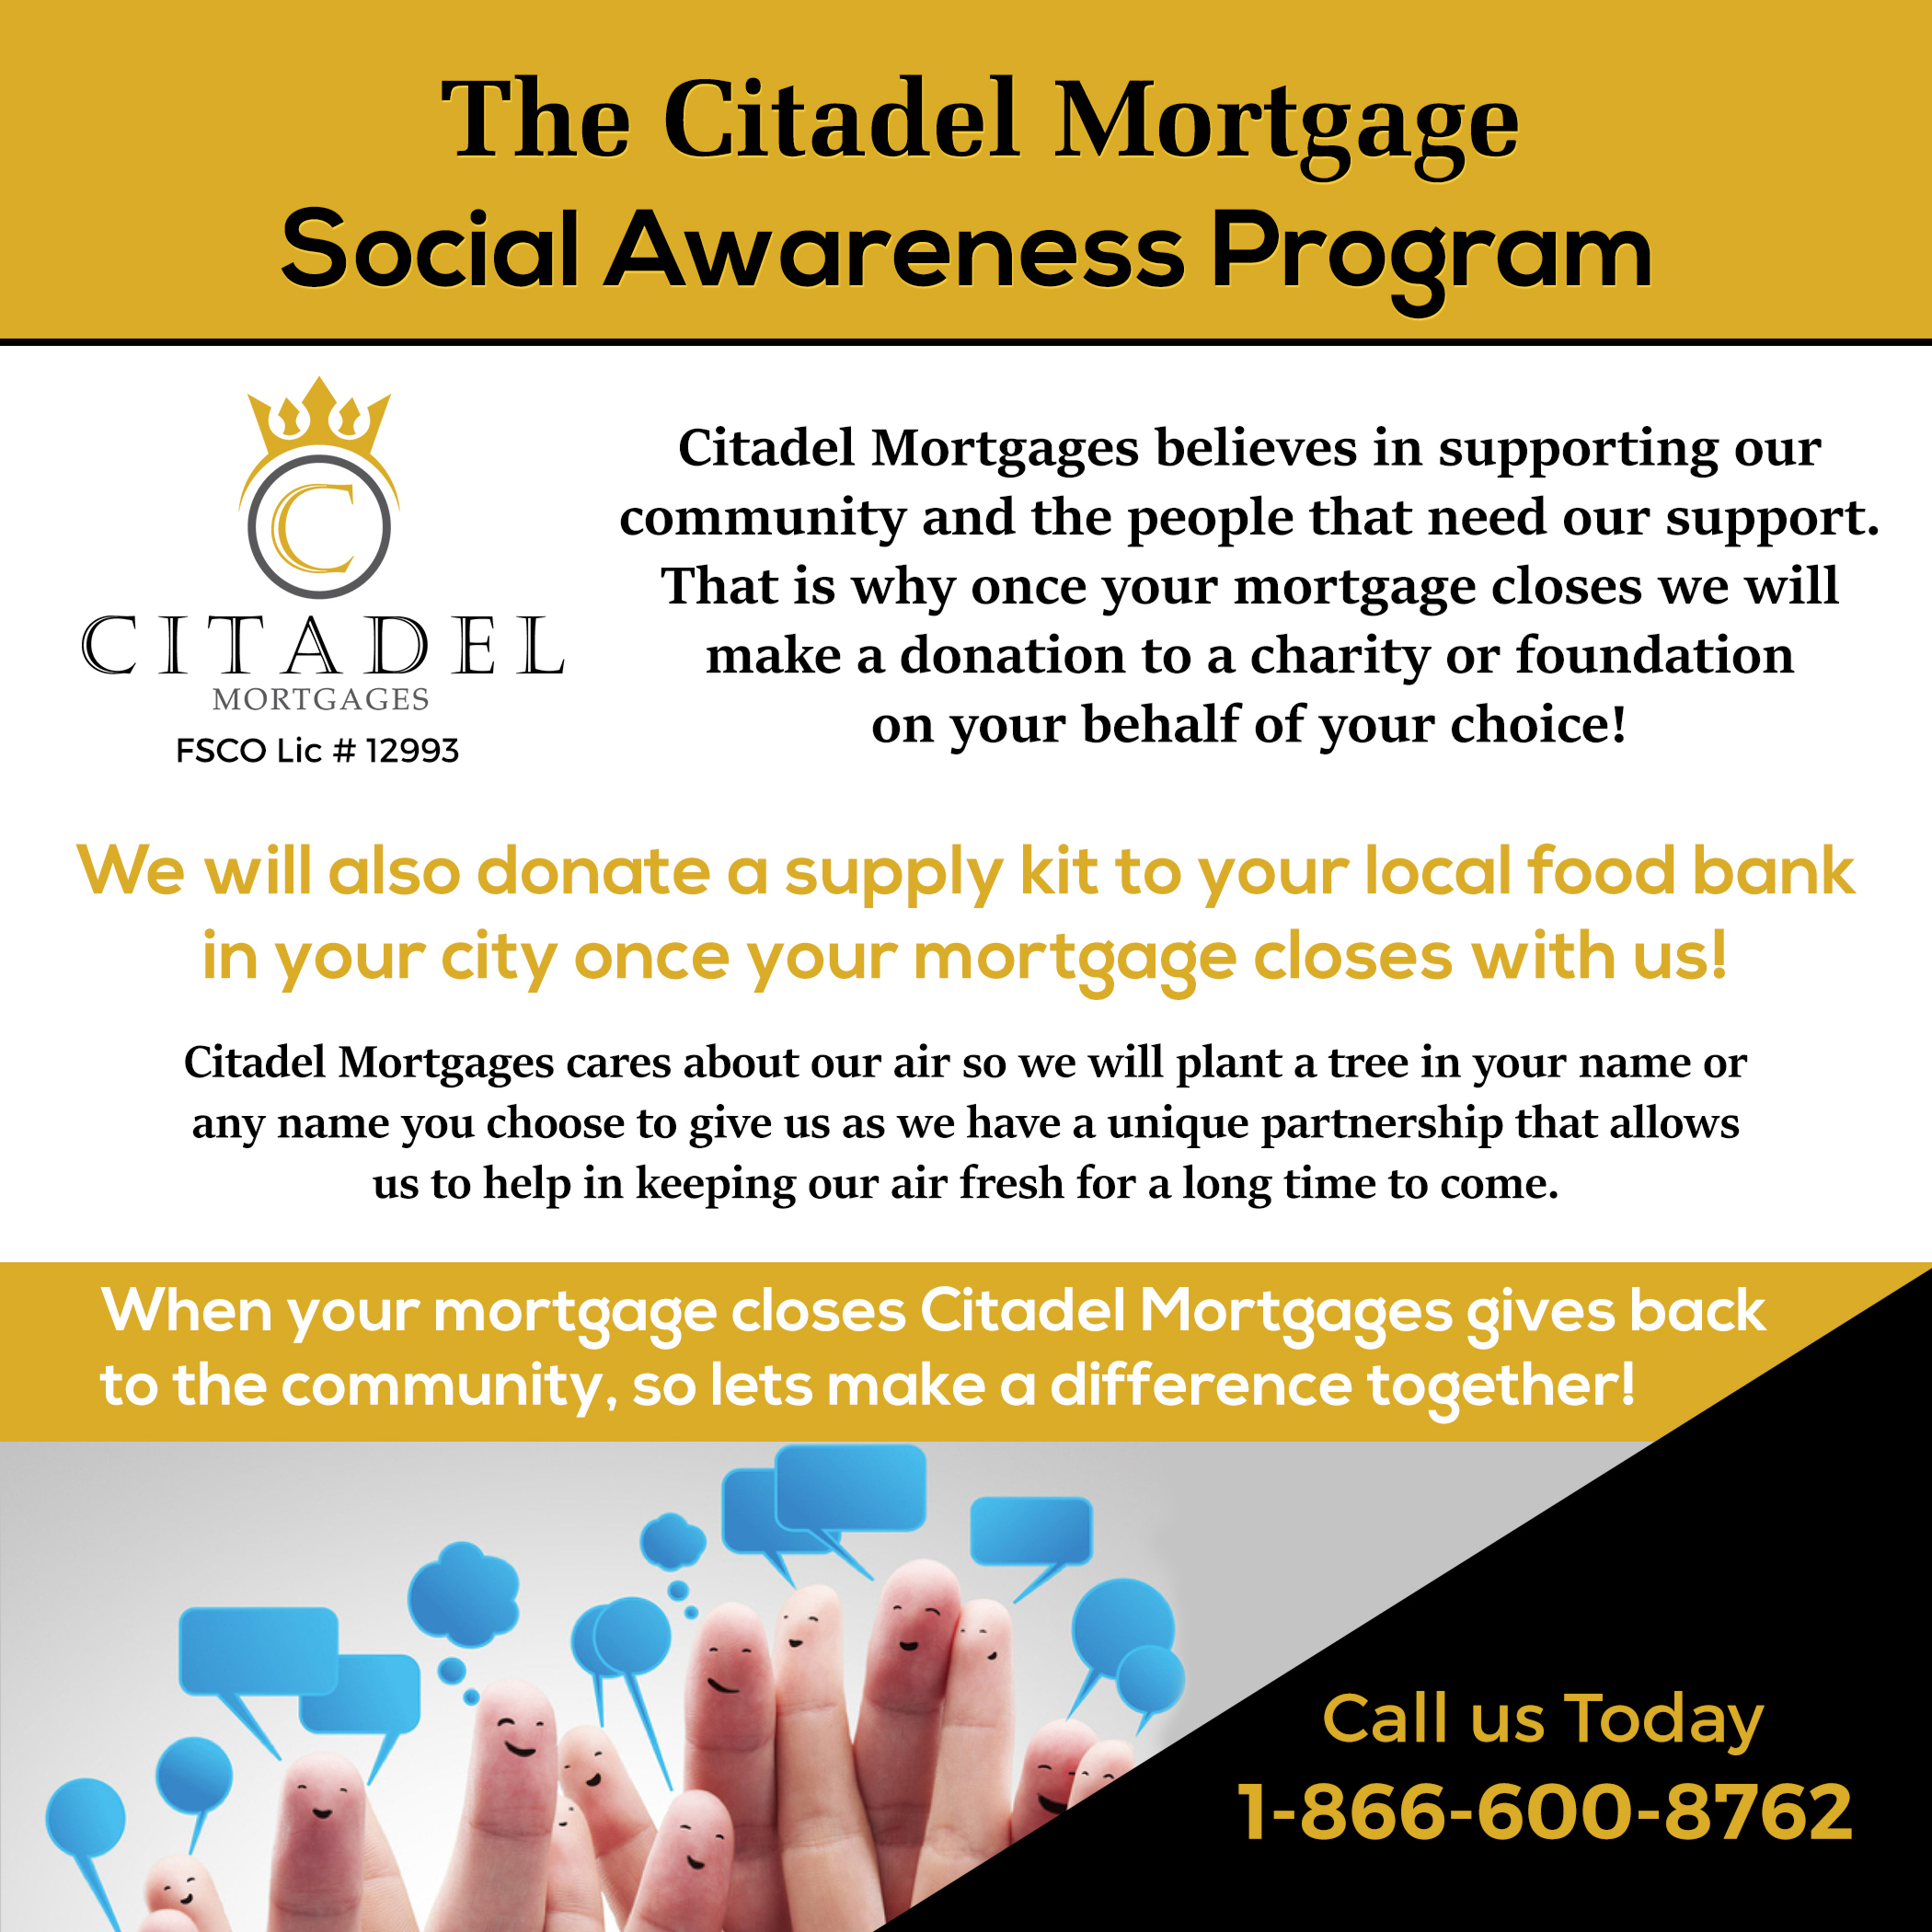 Social Awarenece - Citadel Mortgages